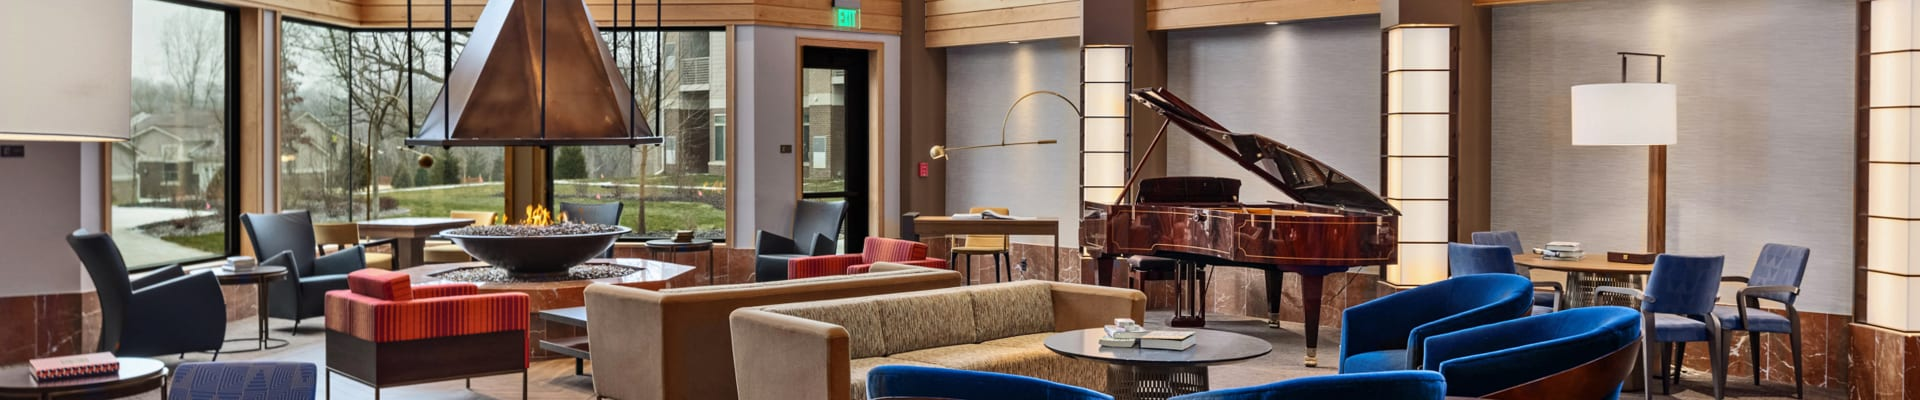 Living and care levels at All Seasons Ann Arbor in Ann Arbor, Michigan